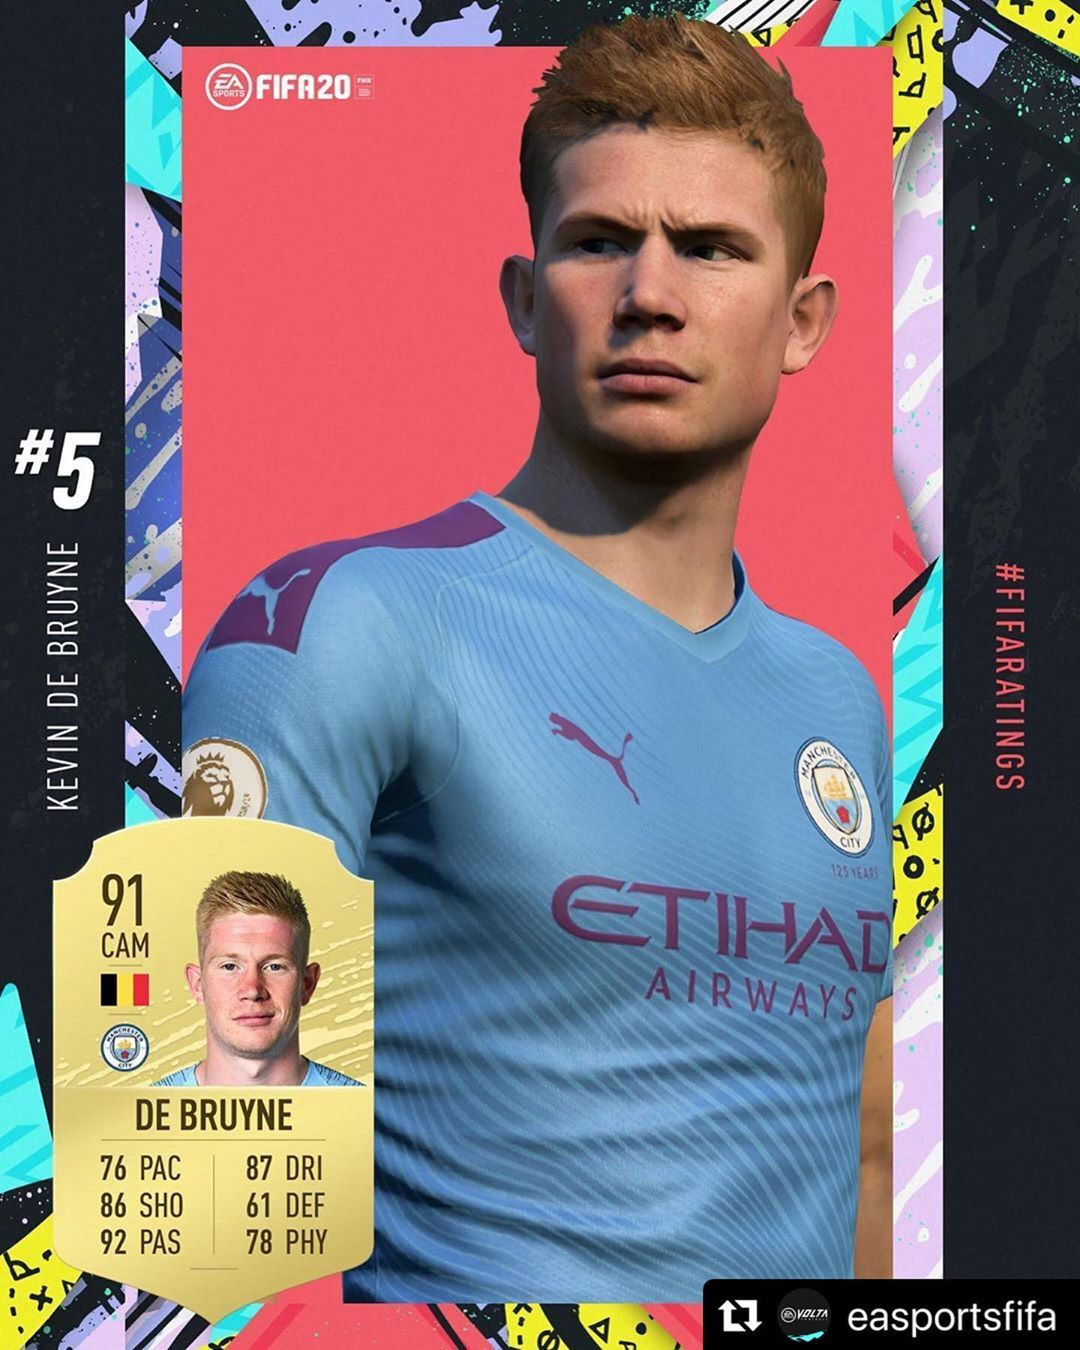 Fifa2020 Manchestercity Debruyne Fifaratings Repost Easportsfifa With Make Repost Passing Level Maestro Click The Link On Fifa Fifa 20 Free Kick